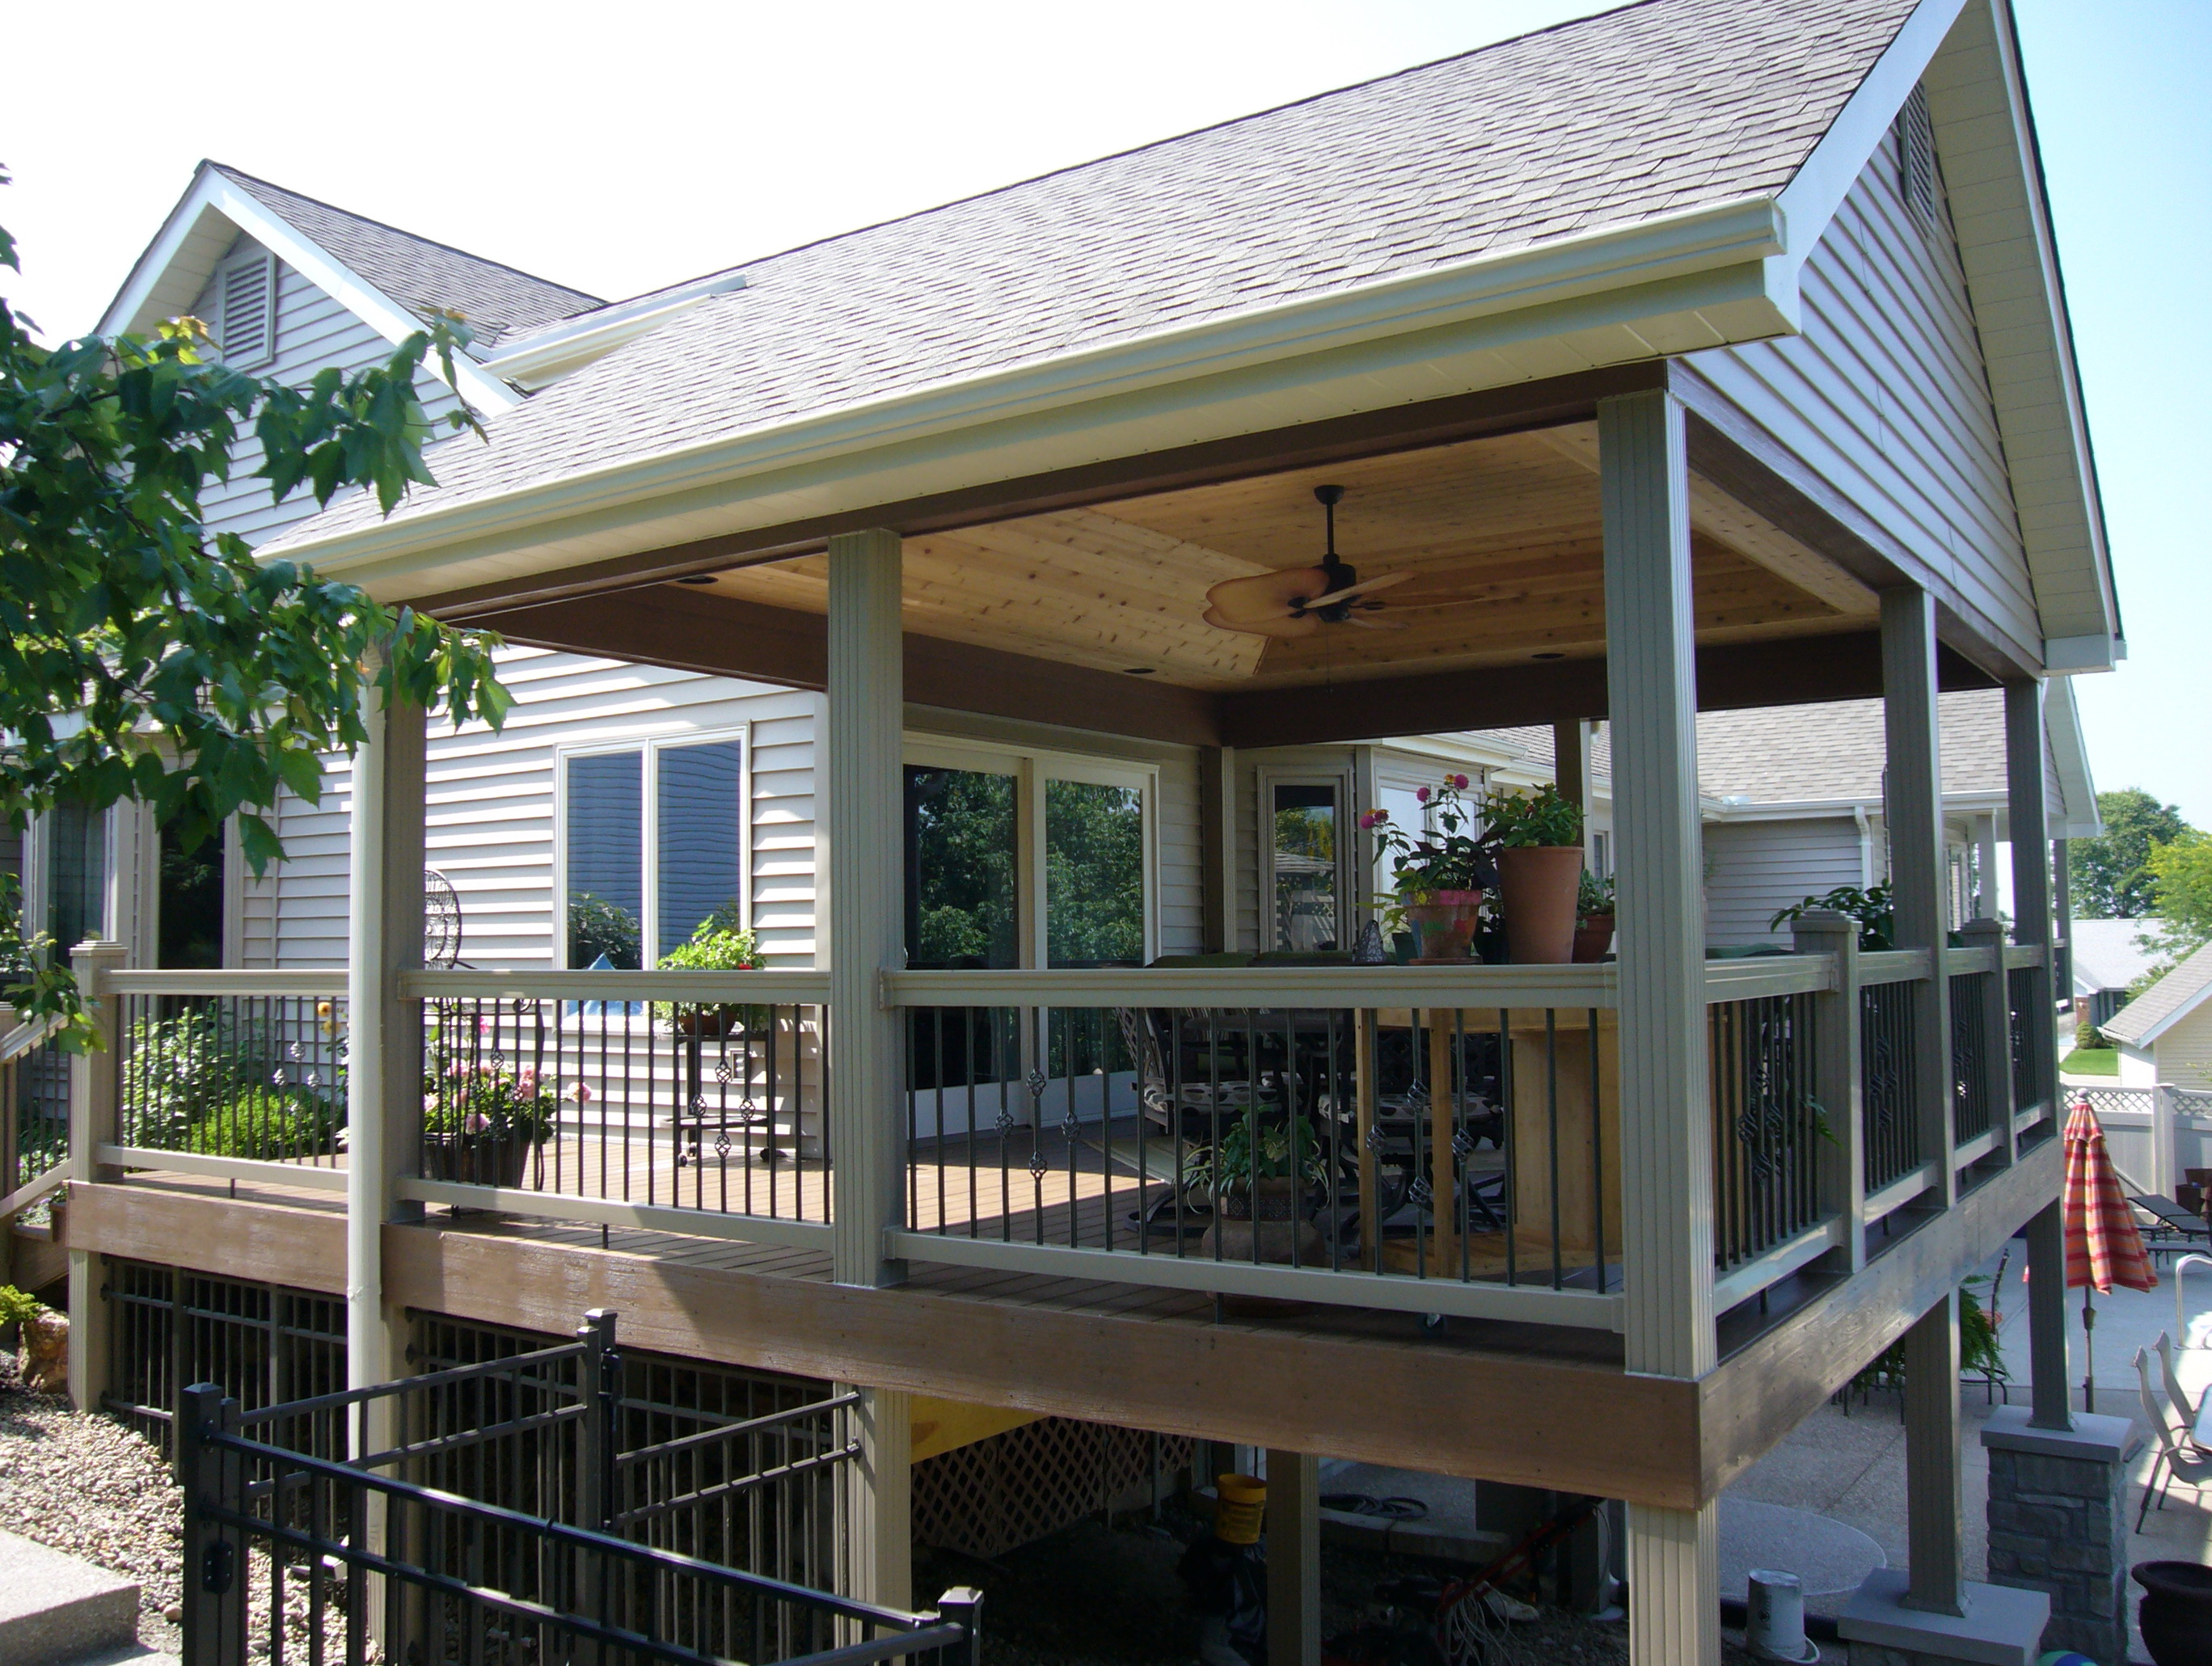 Outdoor Covered Deck Ideas | Home Design Ideas on Covered Back Deck Designs id=86253